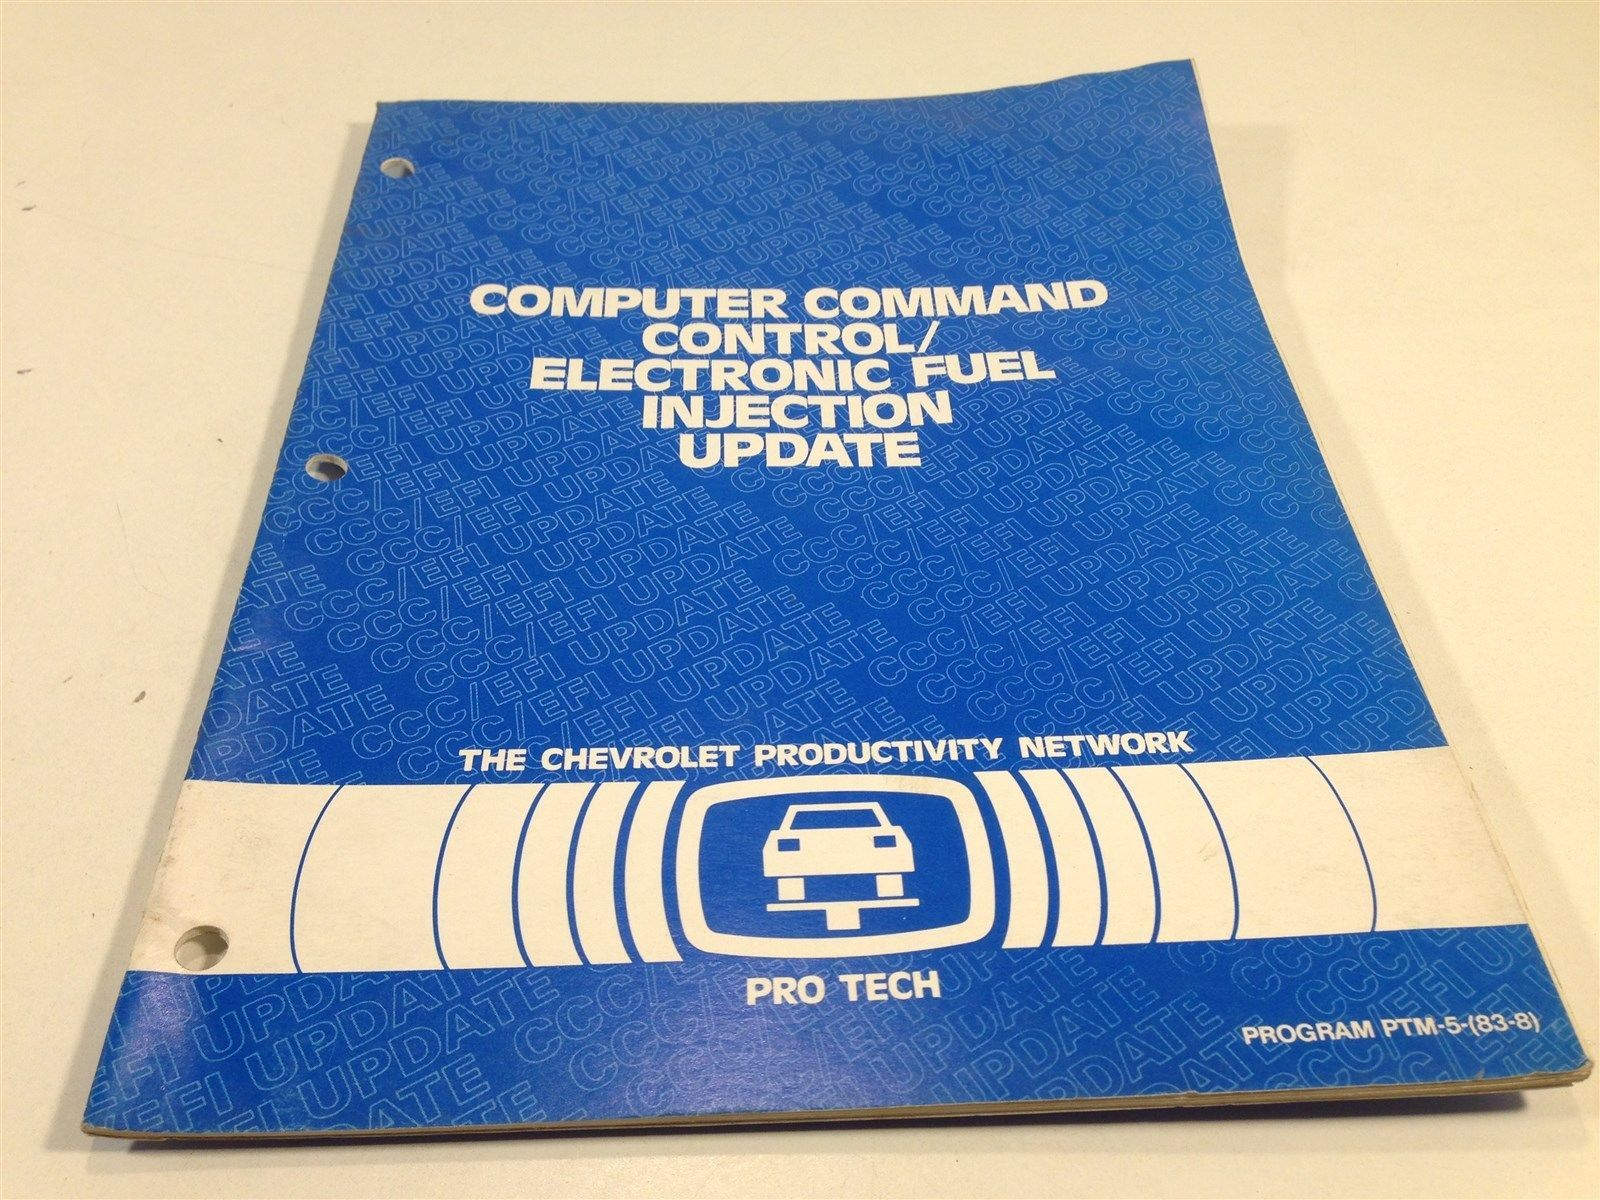 1983 Chevrolet Pro Tech Computer Command Control Service Manual Blue Book Update